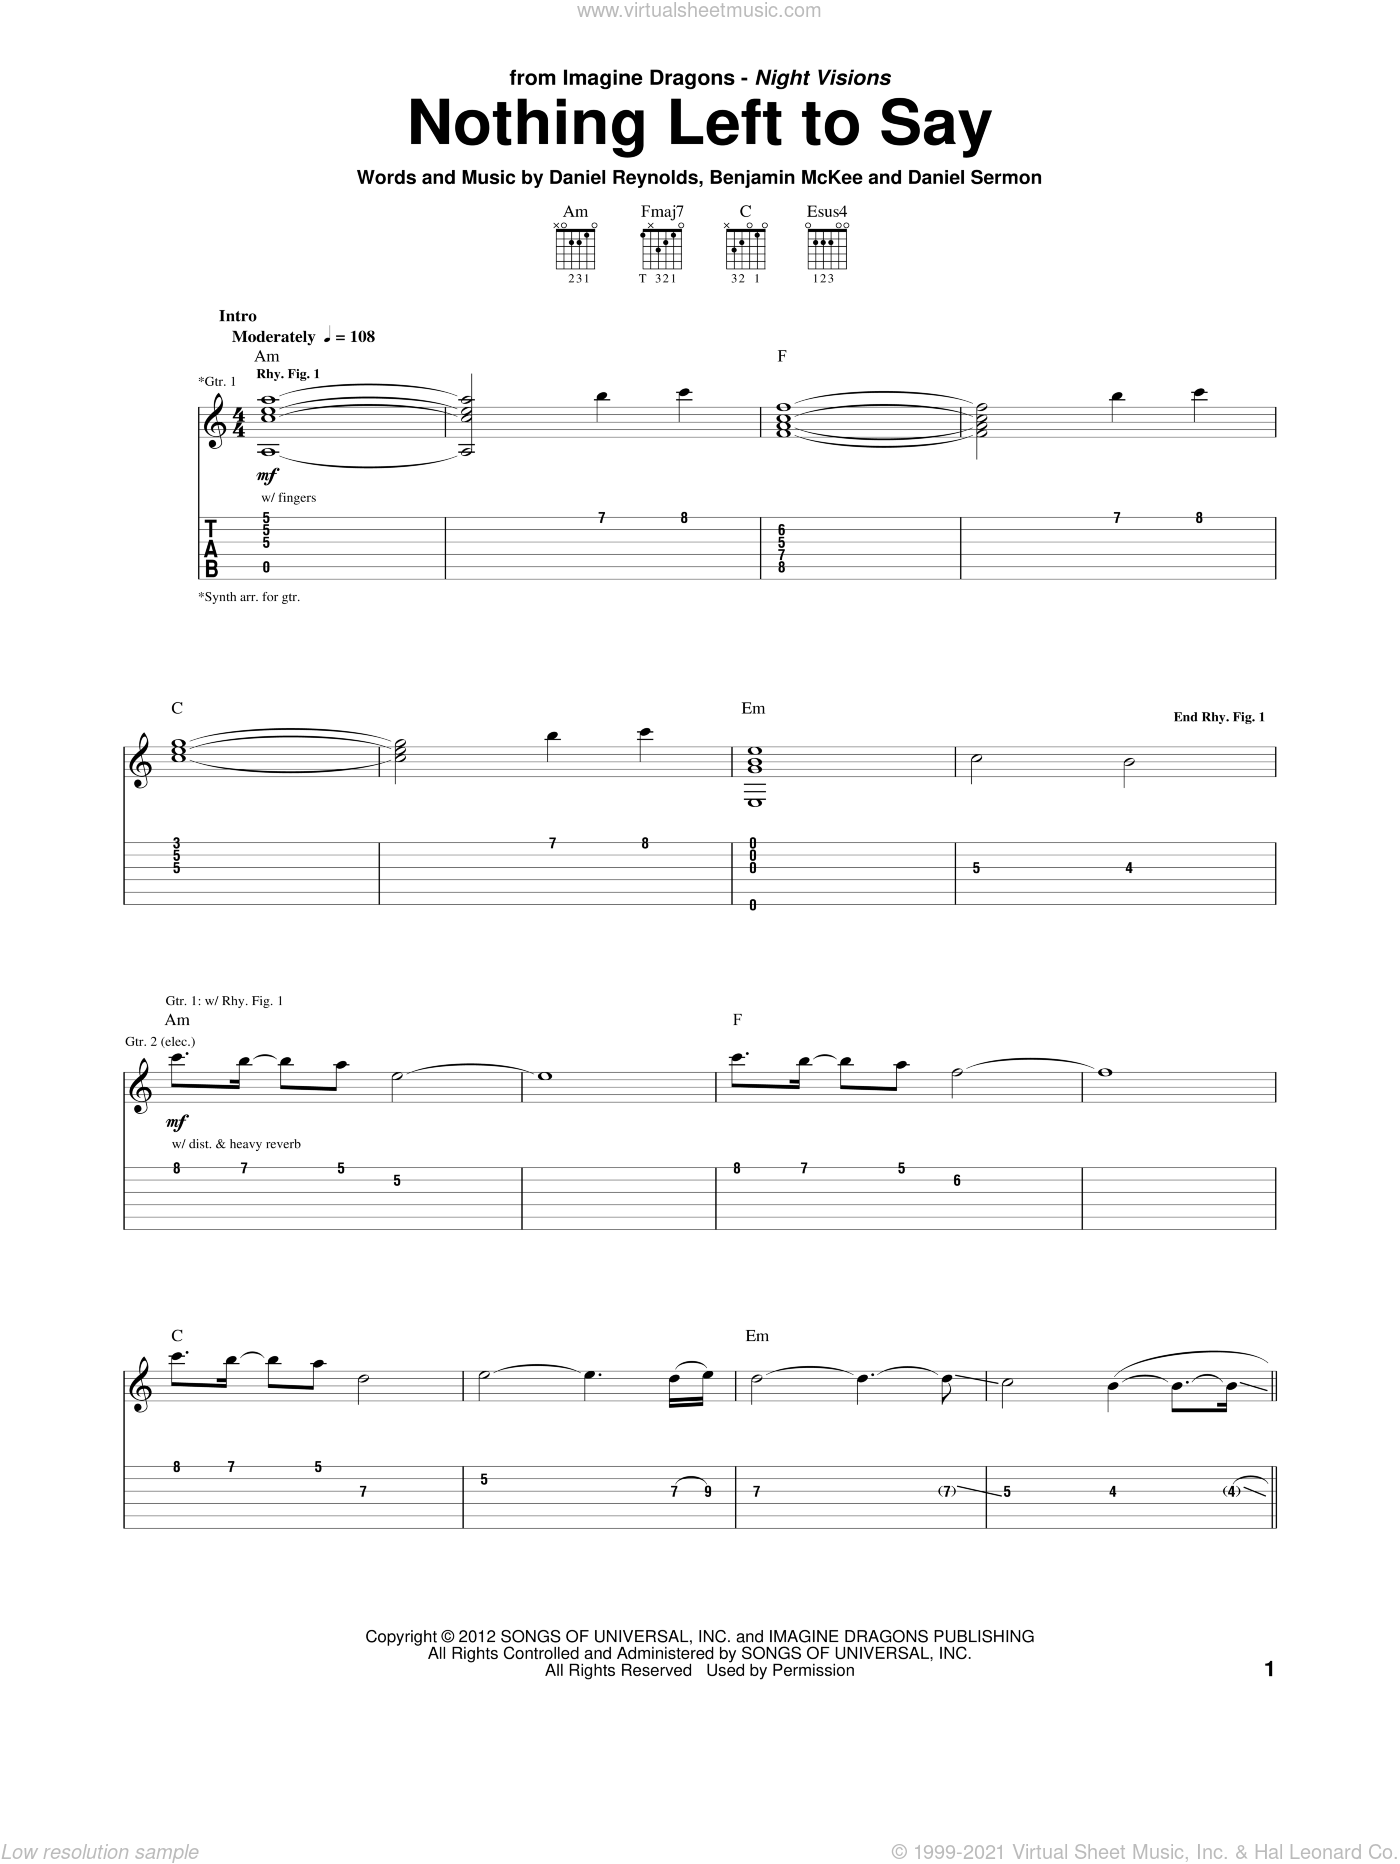 Nothing Left To Say sheet music for guitar (tablature) by Imagine Dragons. Score Image Preview.